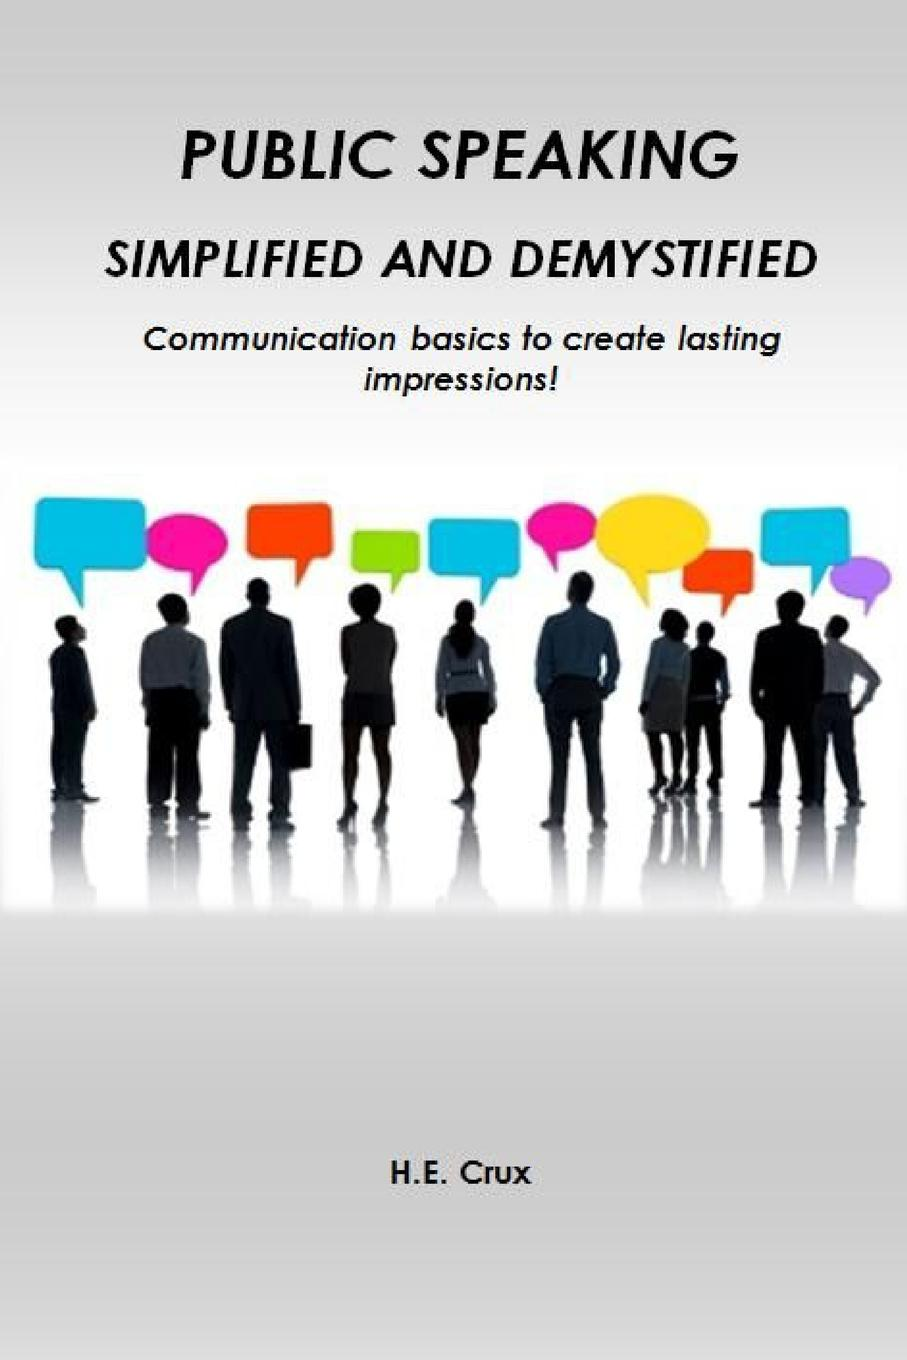 H. E. CRUX Public Speaking, Simplified and Demystified. Communication basics to create lasting impressions. jan yager phd jan yager tthe fast track guide to speaking in public